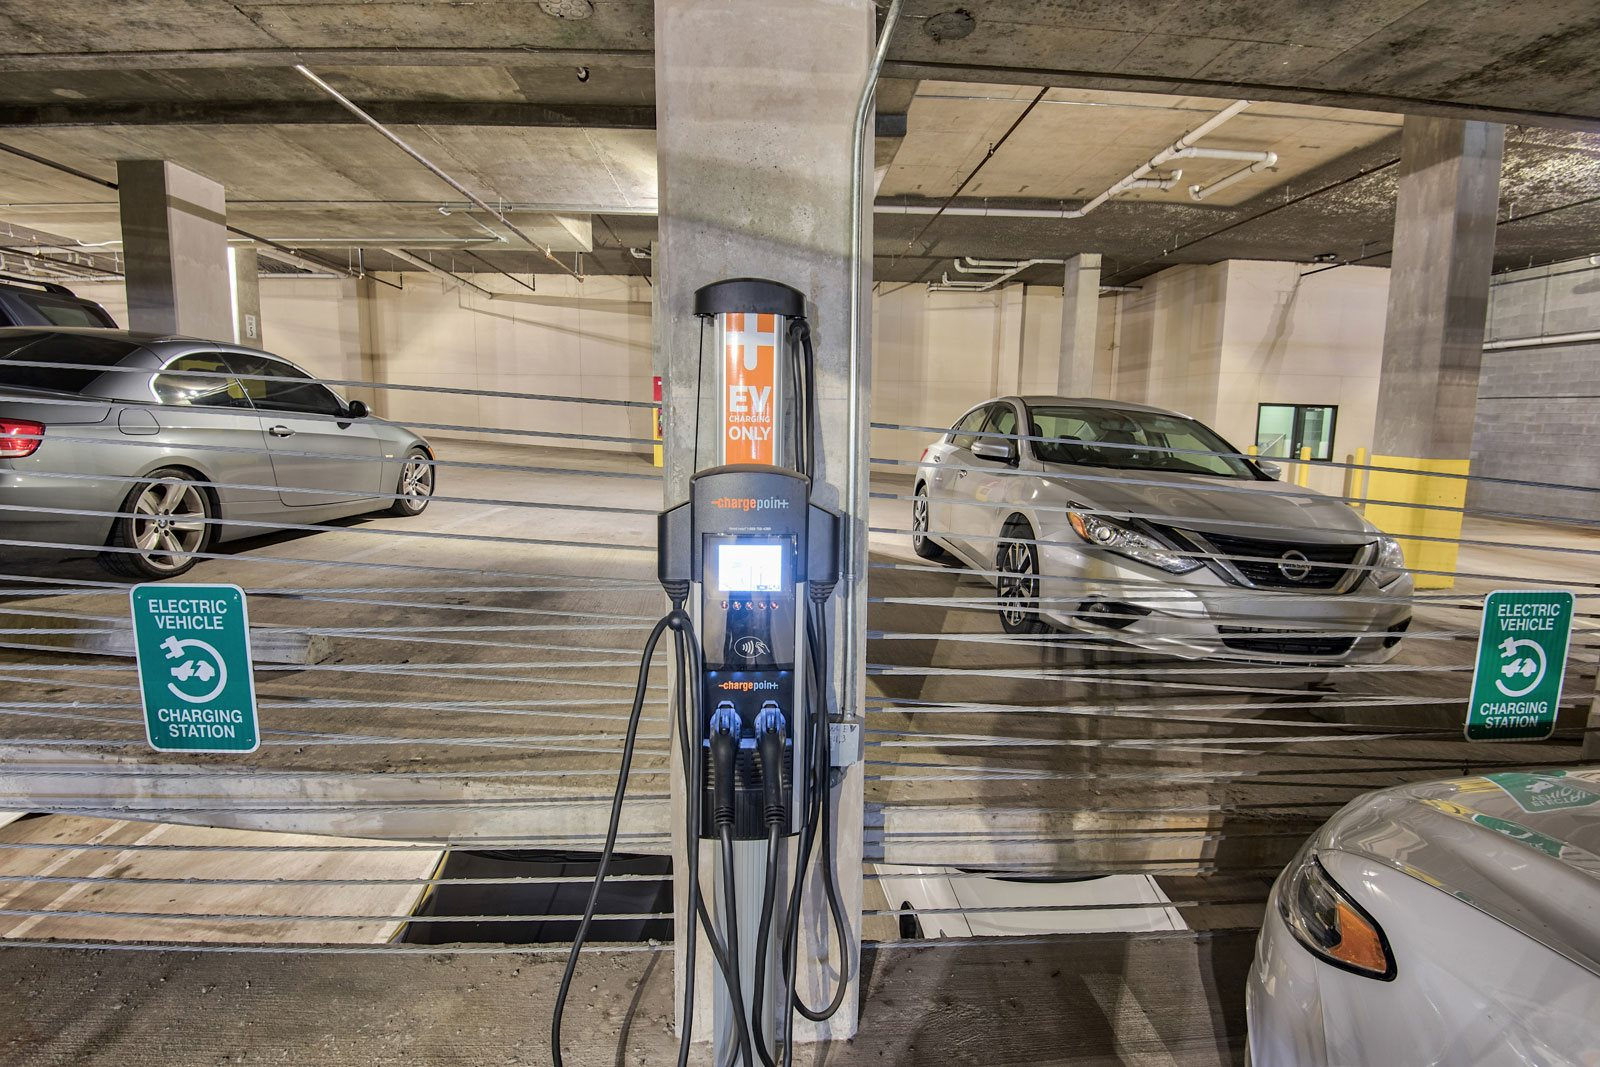 Electric Vehicle Charging Stations at Midtown Houston by Windsor, 2310 Main Street, Houston